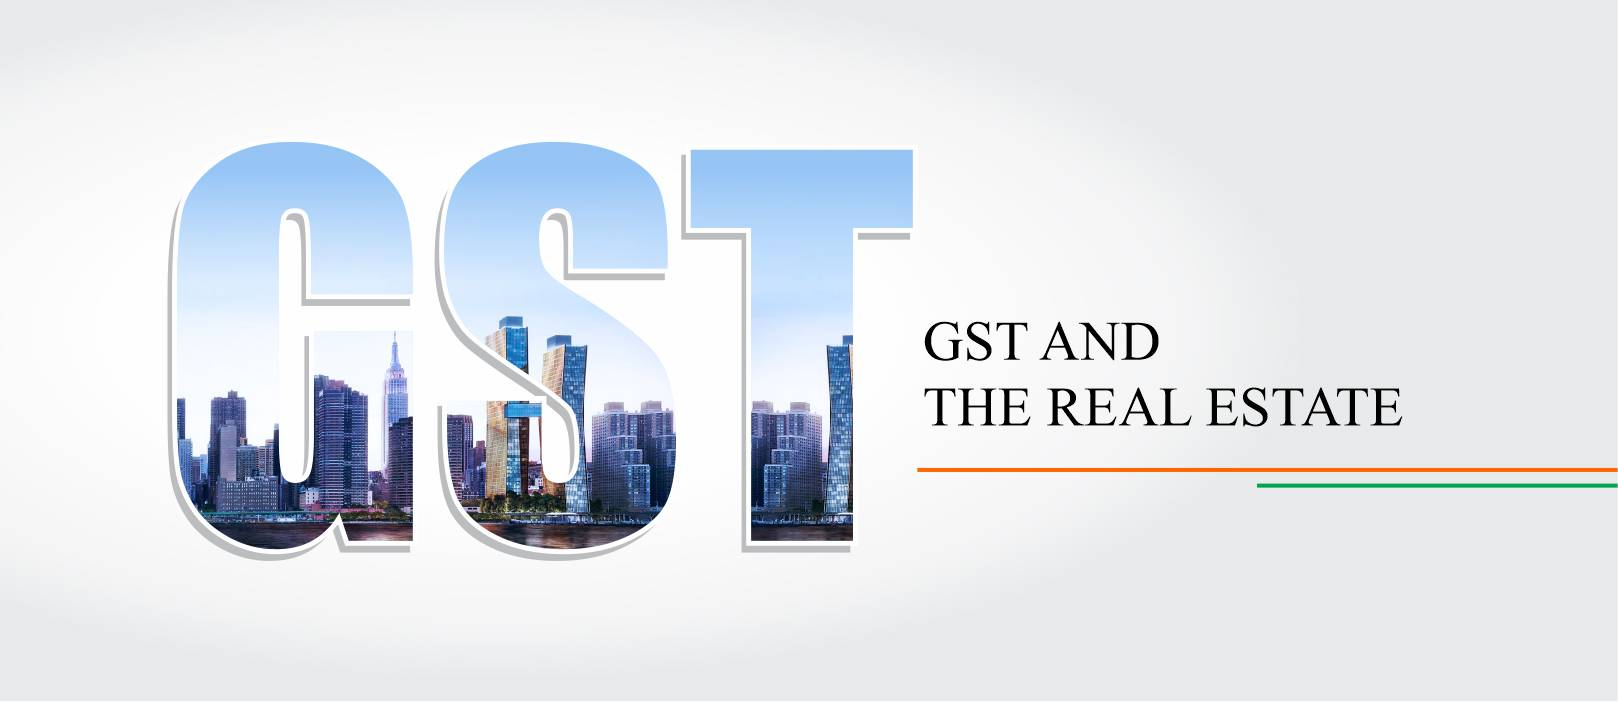 Why Amit Mitra Seeks Changes to Real Estate GST Rules - 5 Major Contentions